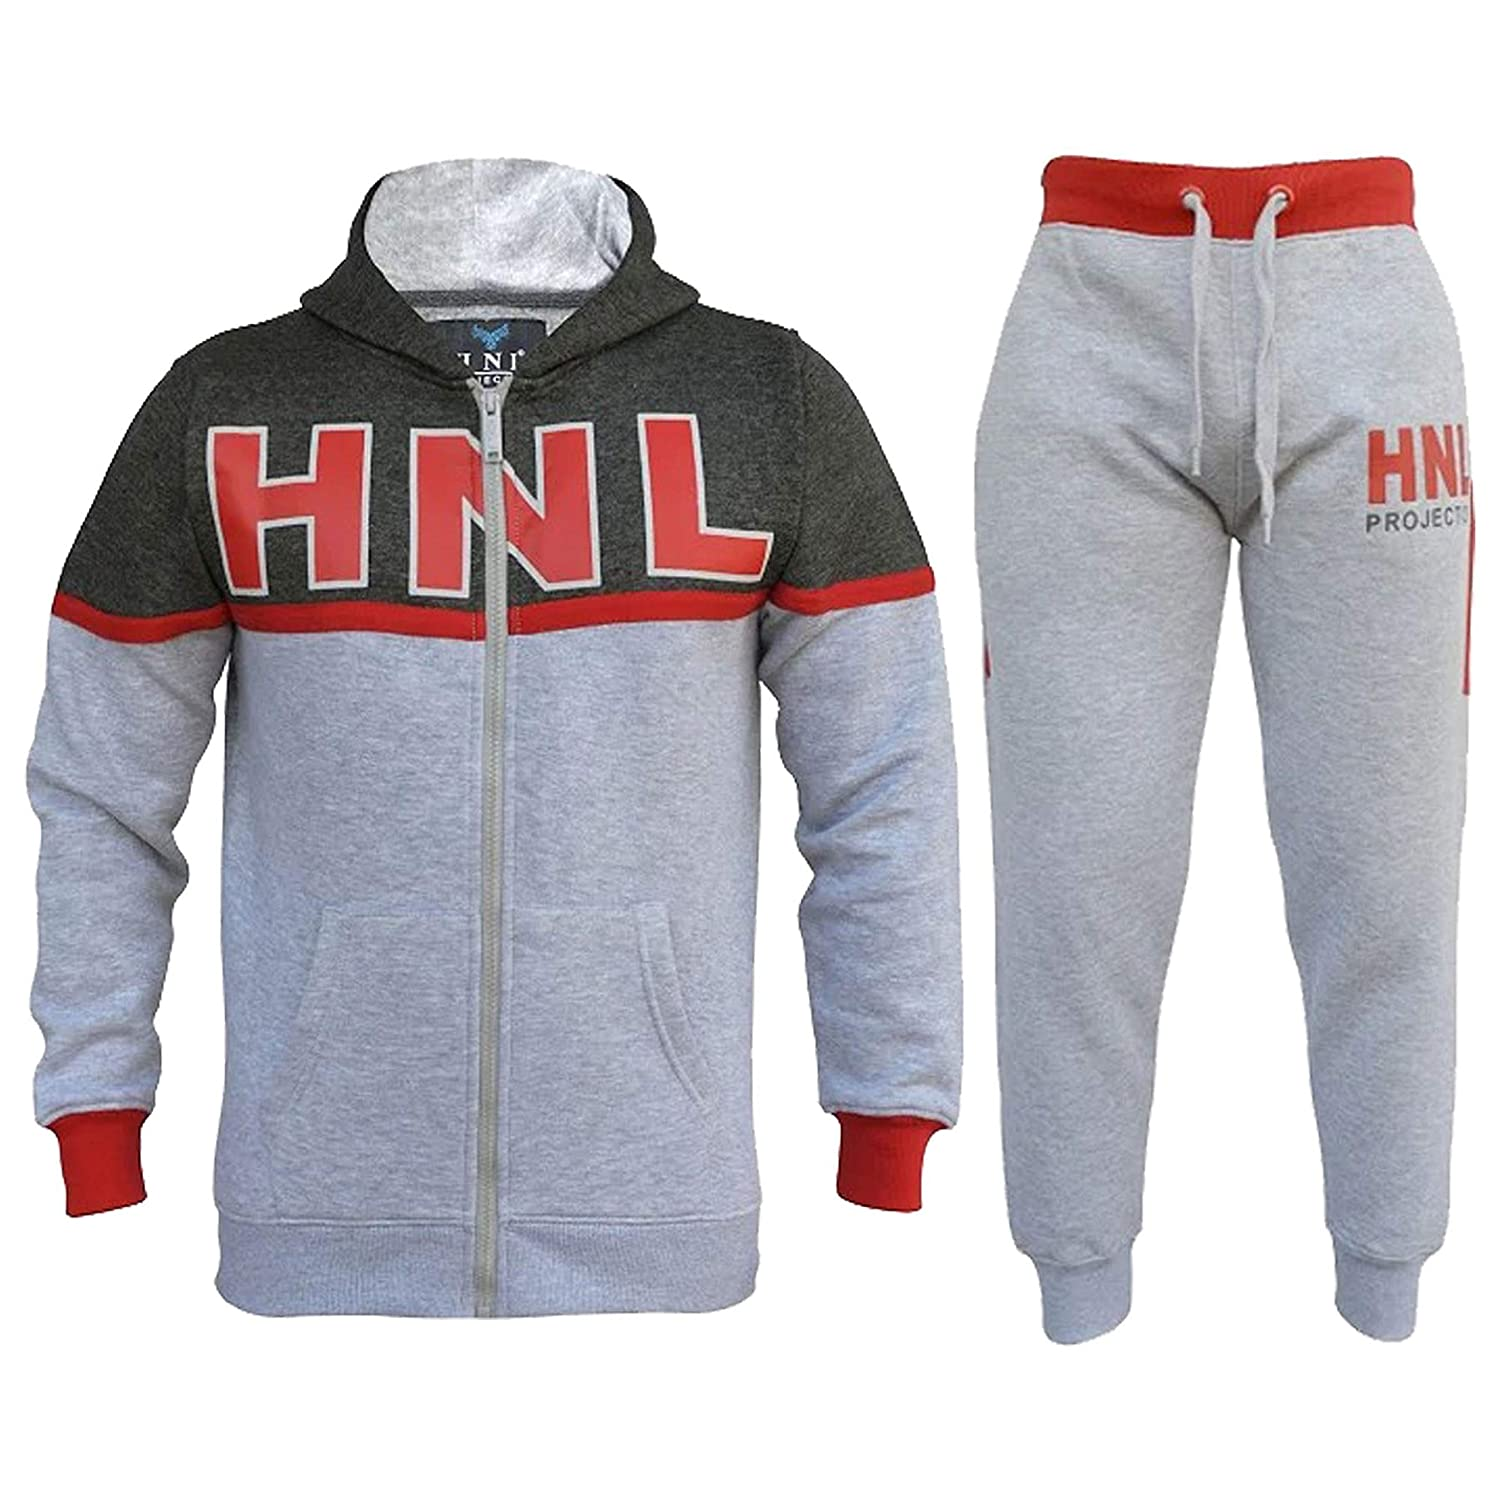 A2Z 4 Kids Boys Tracksuits Kids HNL Green Camouflage Hoodie Top /& Bottom Pullover Jogging Suits Gym Wear Outfit Joggers New Age 7 8 9 10 11 12 13 Years